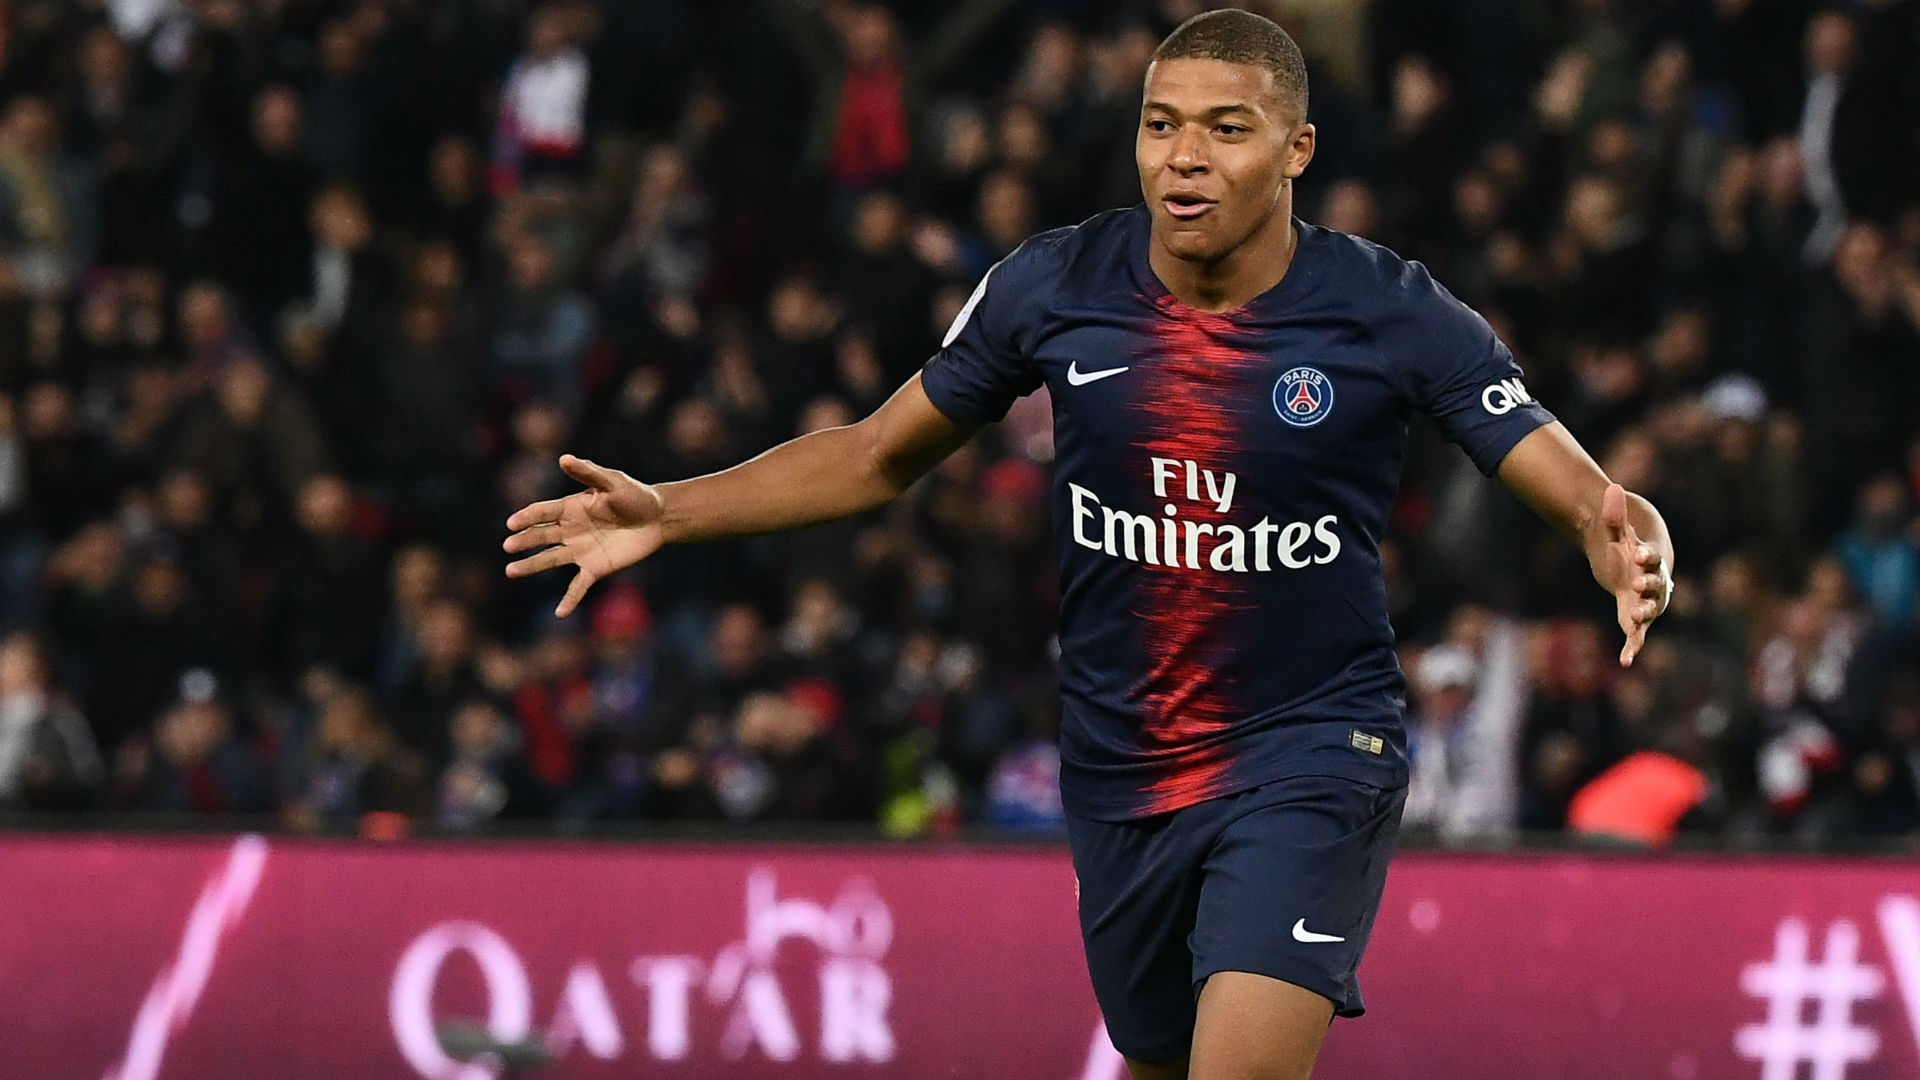 Tuchel: Record-breaking Mbappe could've scored seven goals